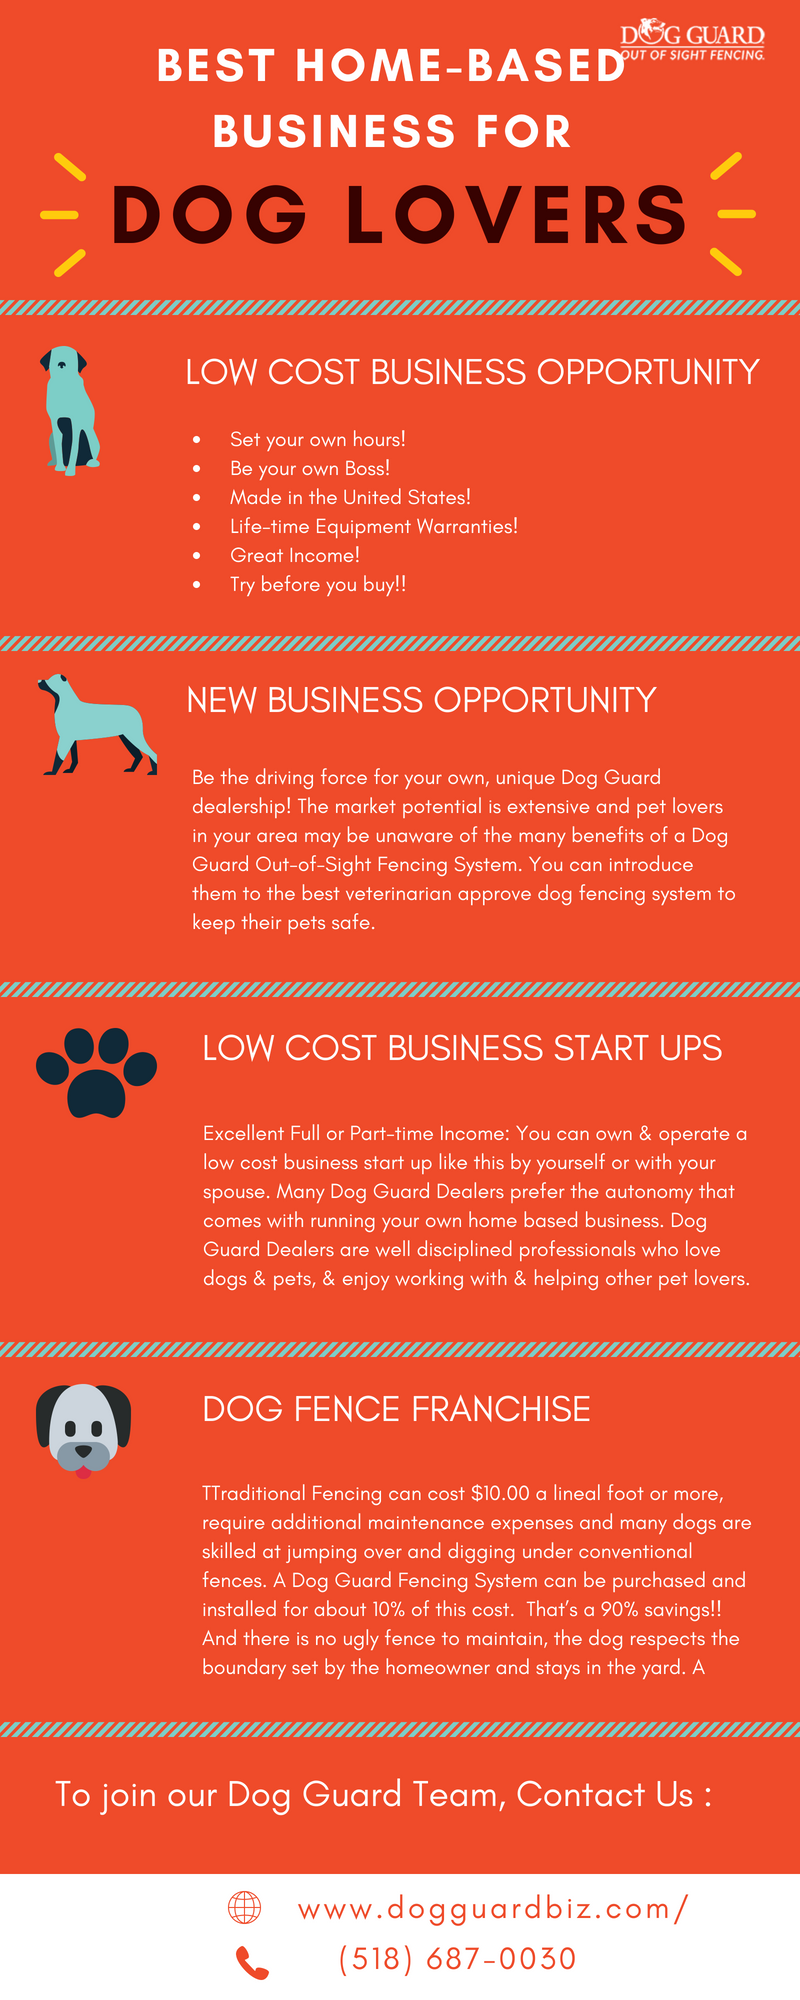 Best Home-Based Pet Business Ideas For Dog Lovers